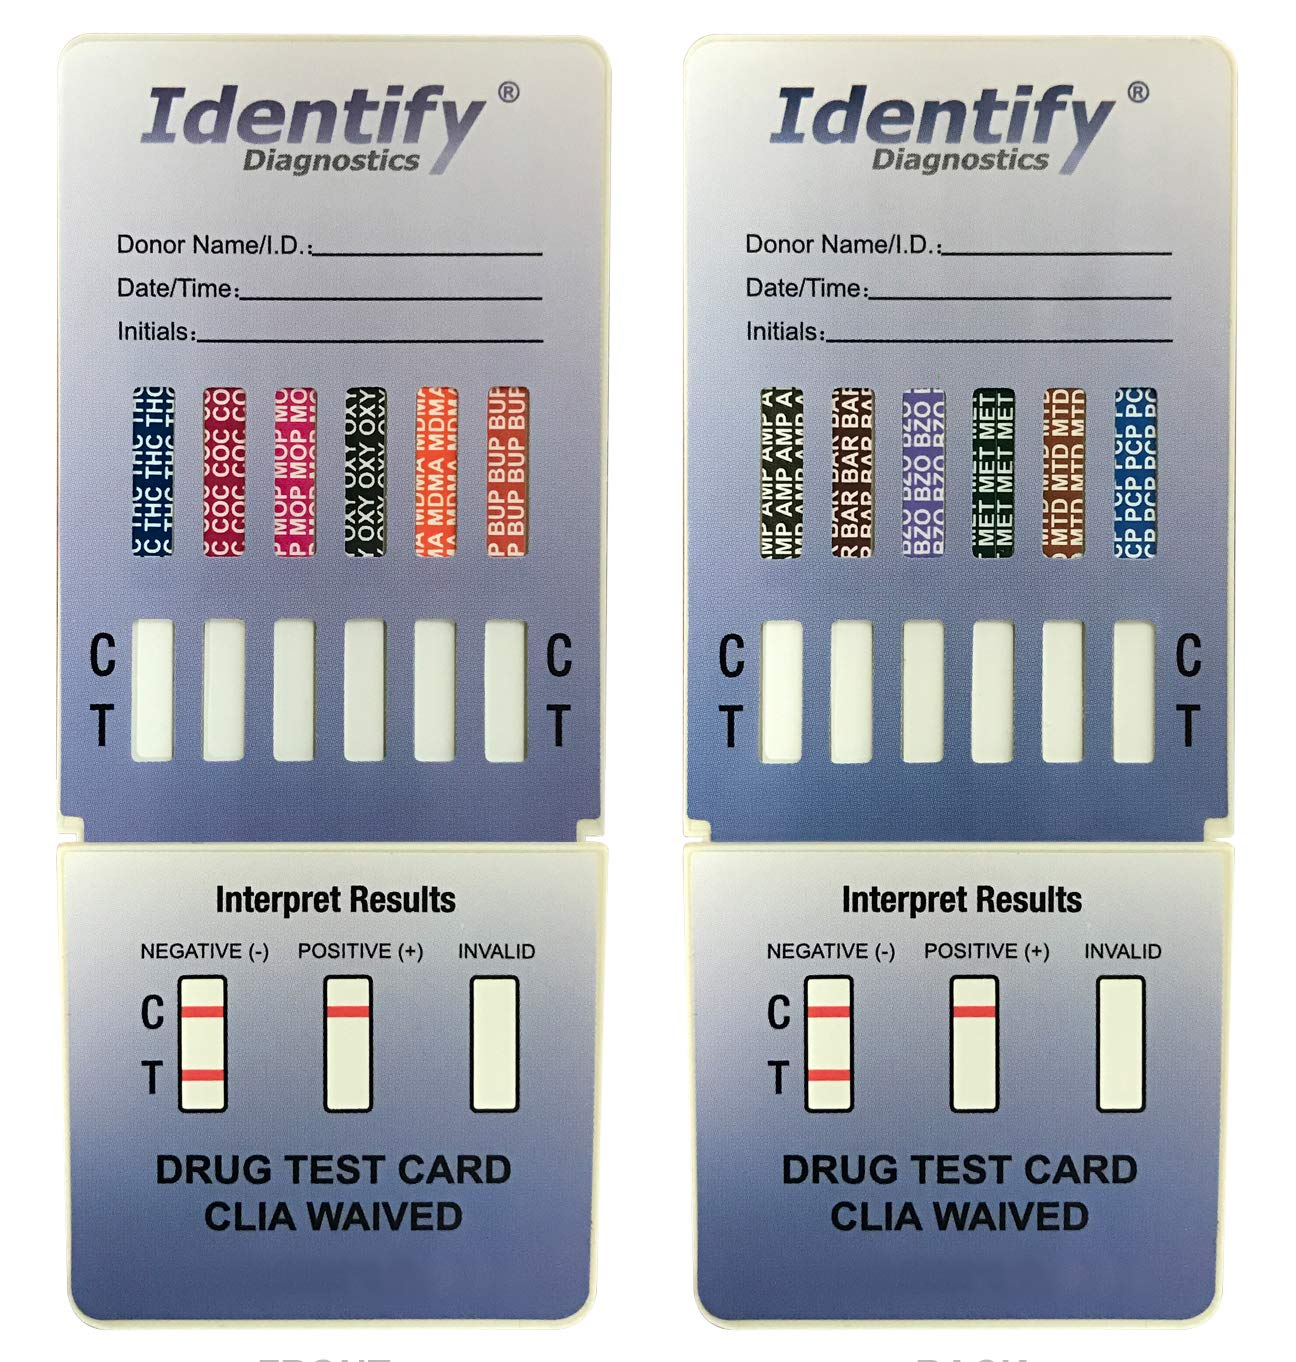 5 Pack Identify Diagnostics 12 Panel Drug Test Dip with Low Opiates Cutoff - Testing Instantly for 12 Drugs: THC, COC, MOP, OXY, MDMA, BUP, AMP, BAR, BZO, MET, MTD, PCP #ID-CP12-DIP by Identify Diagnostics (Image #1)